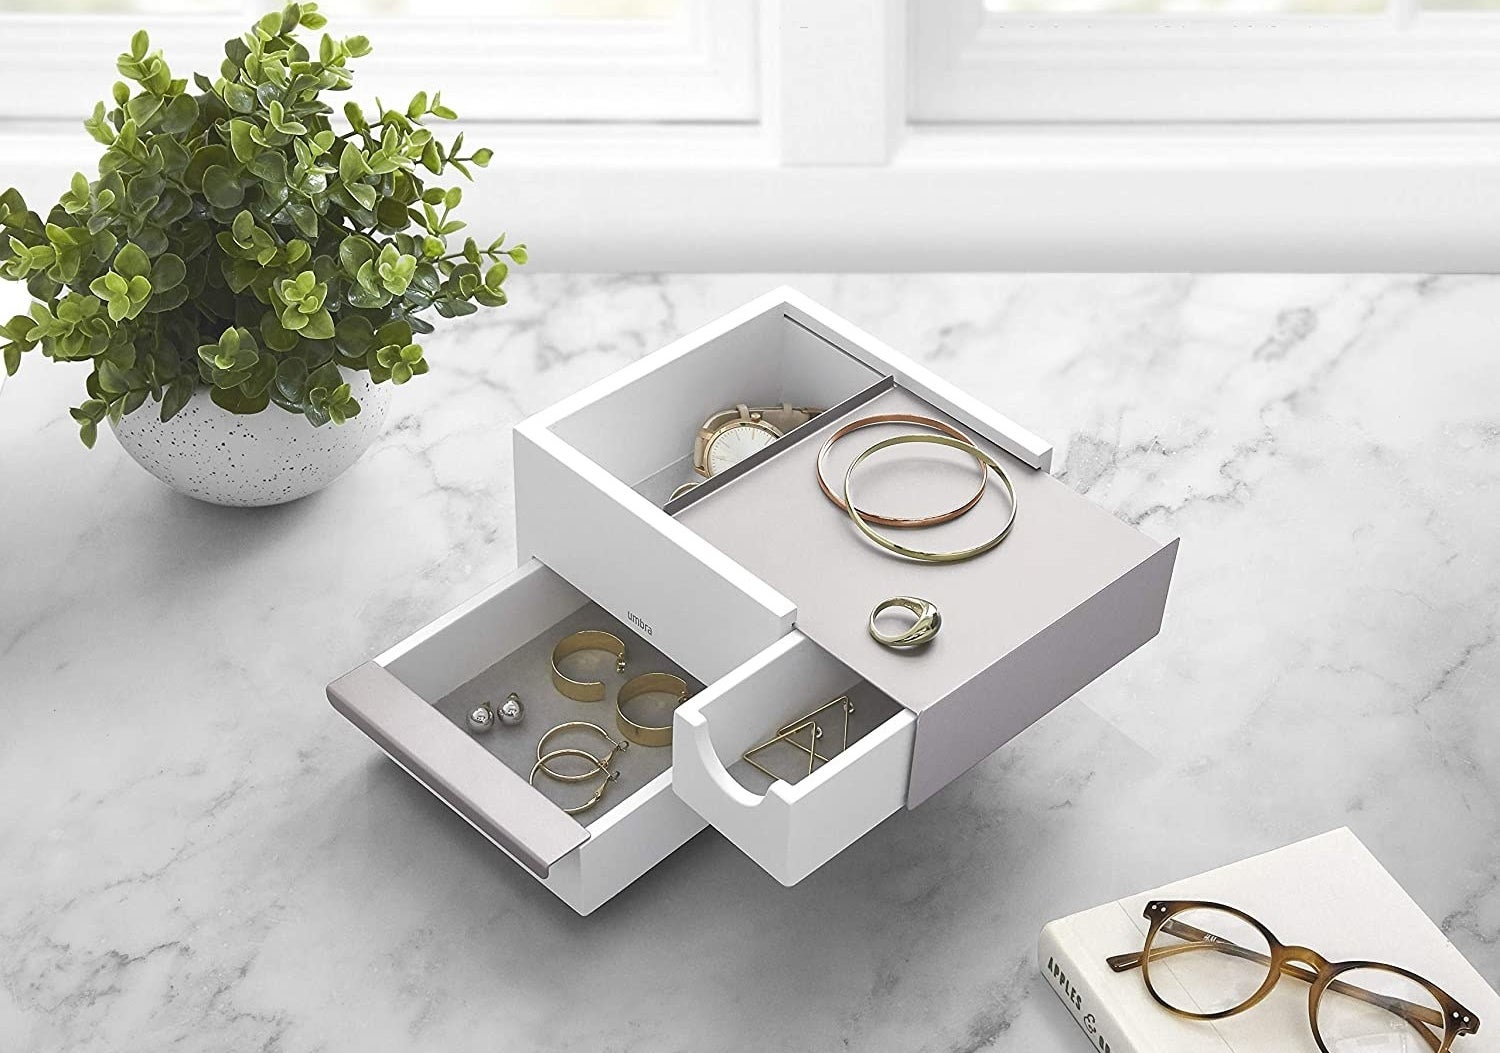 A small square jewelry box with multiple drawers of different sizes